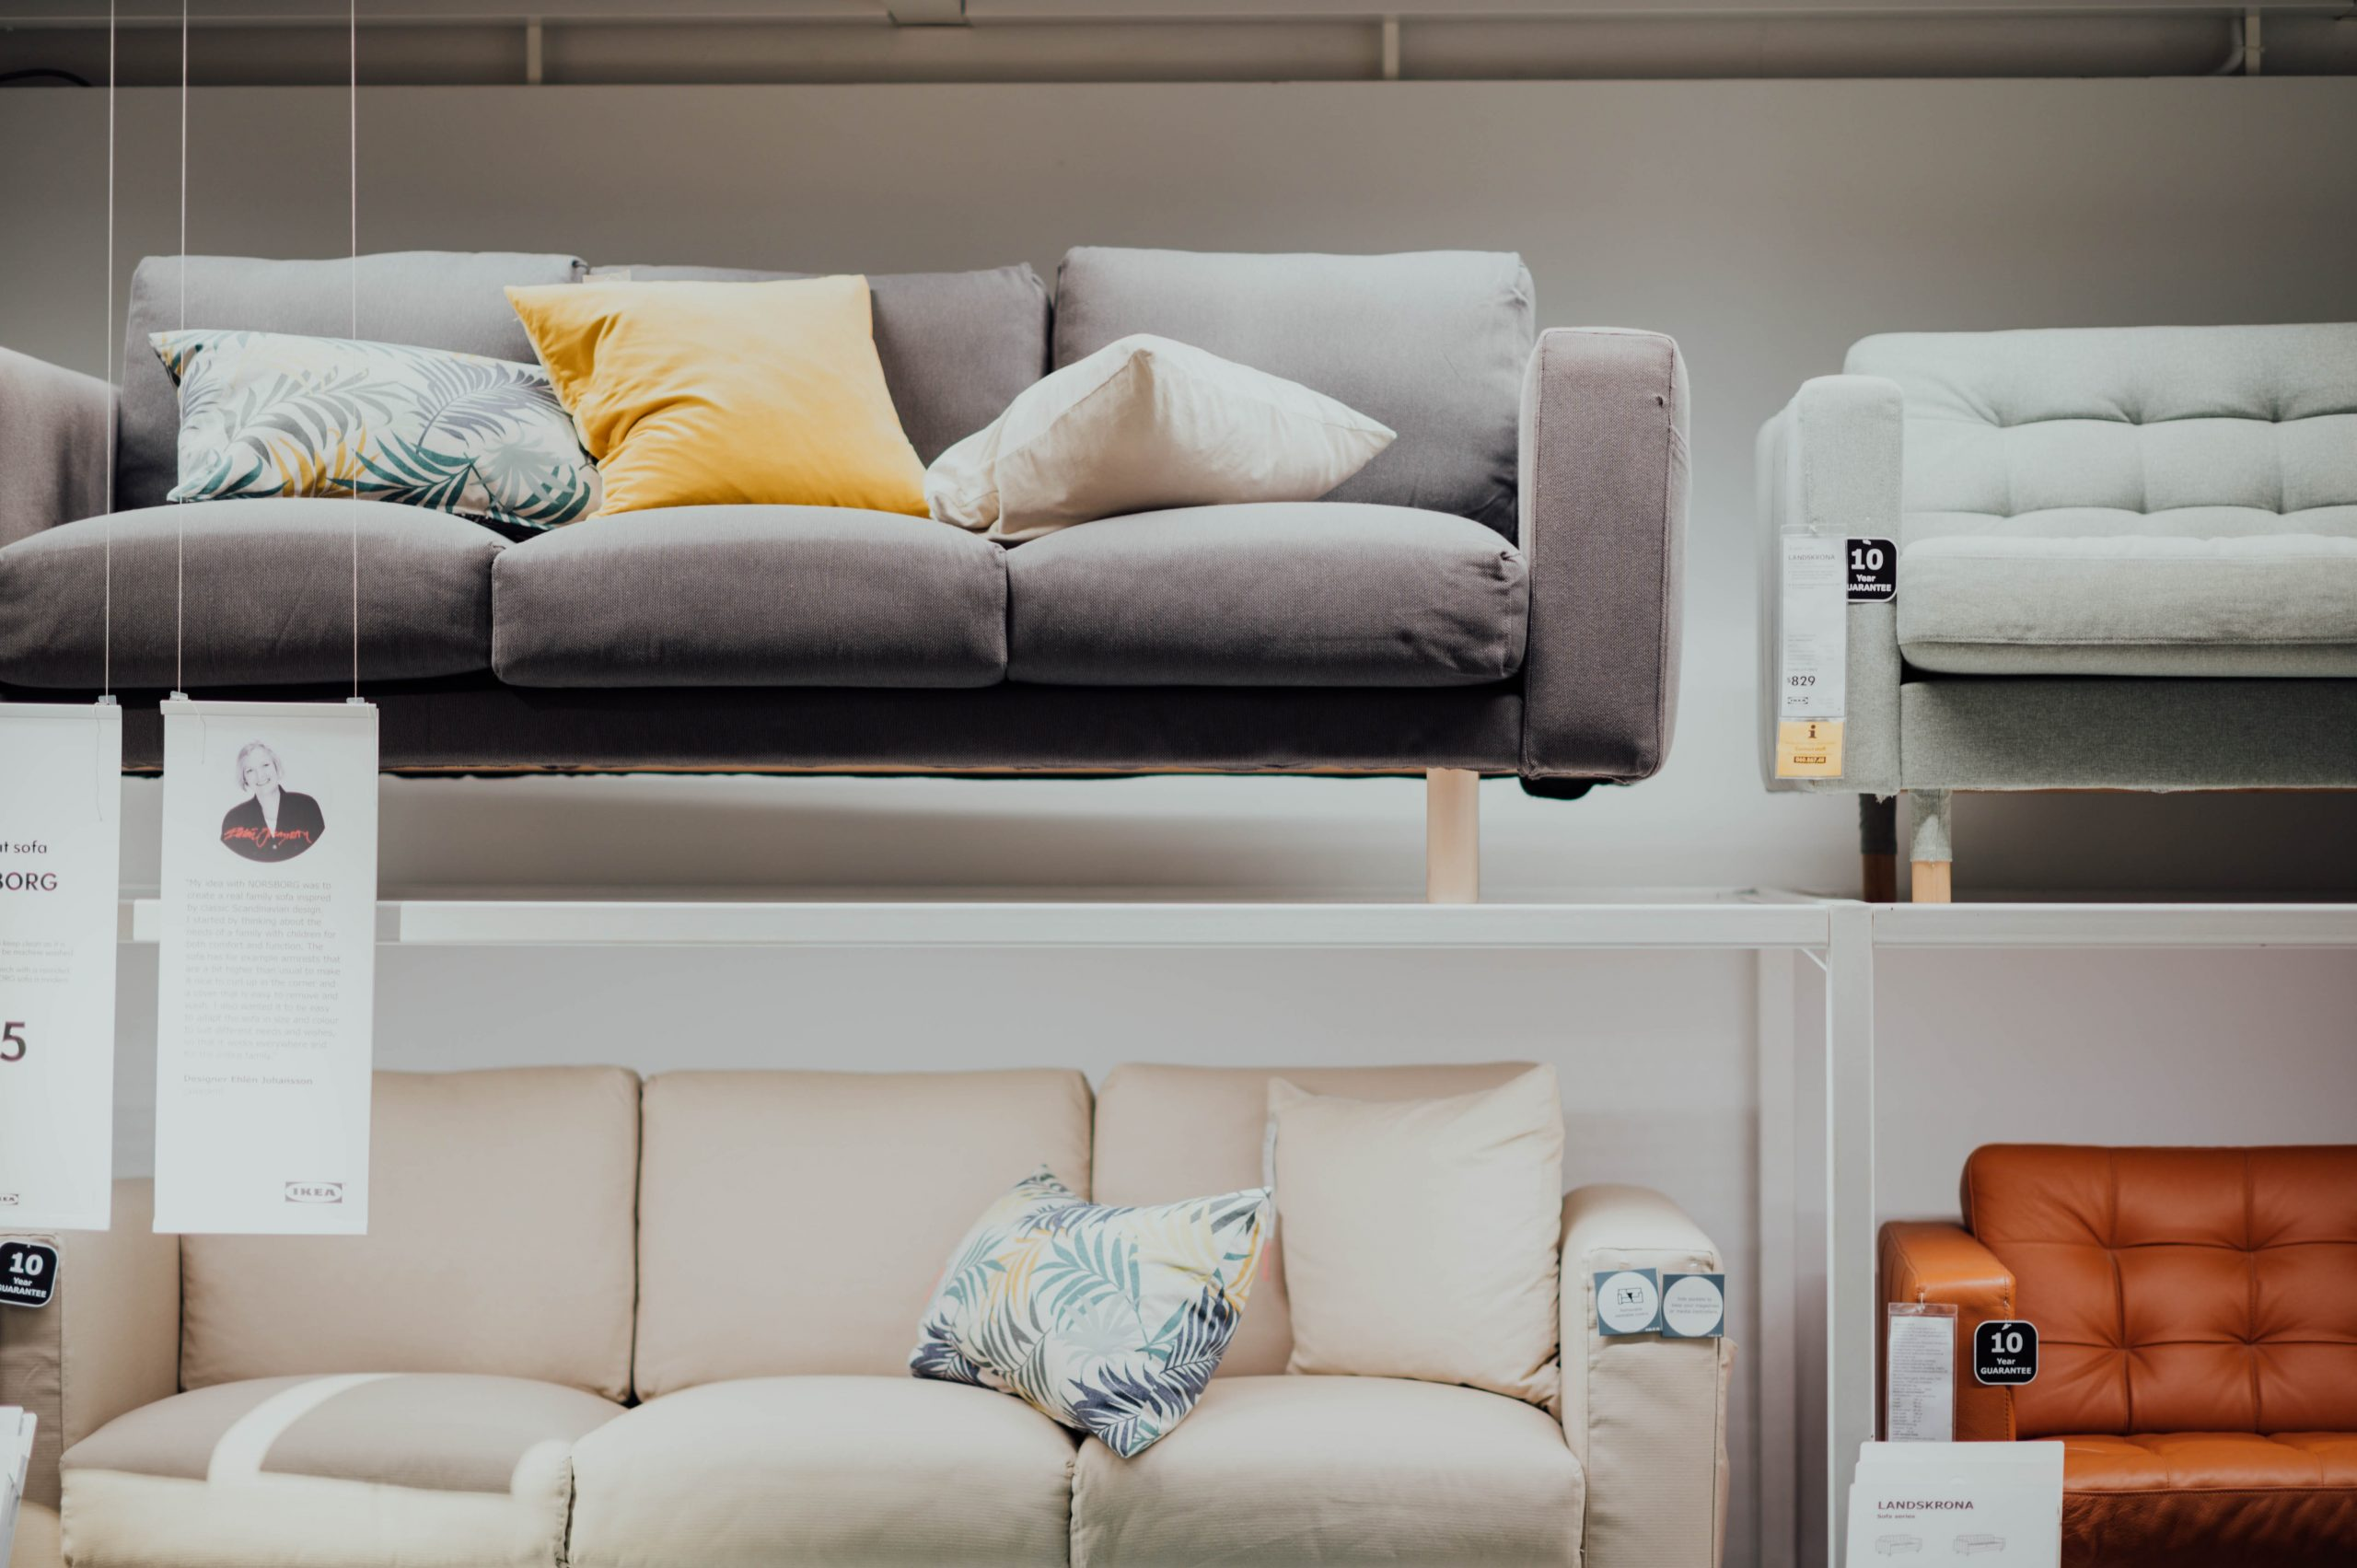 How Much Should You Spend On a Quality Sofa?